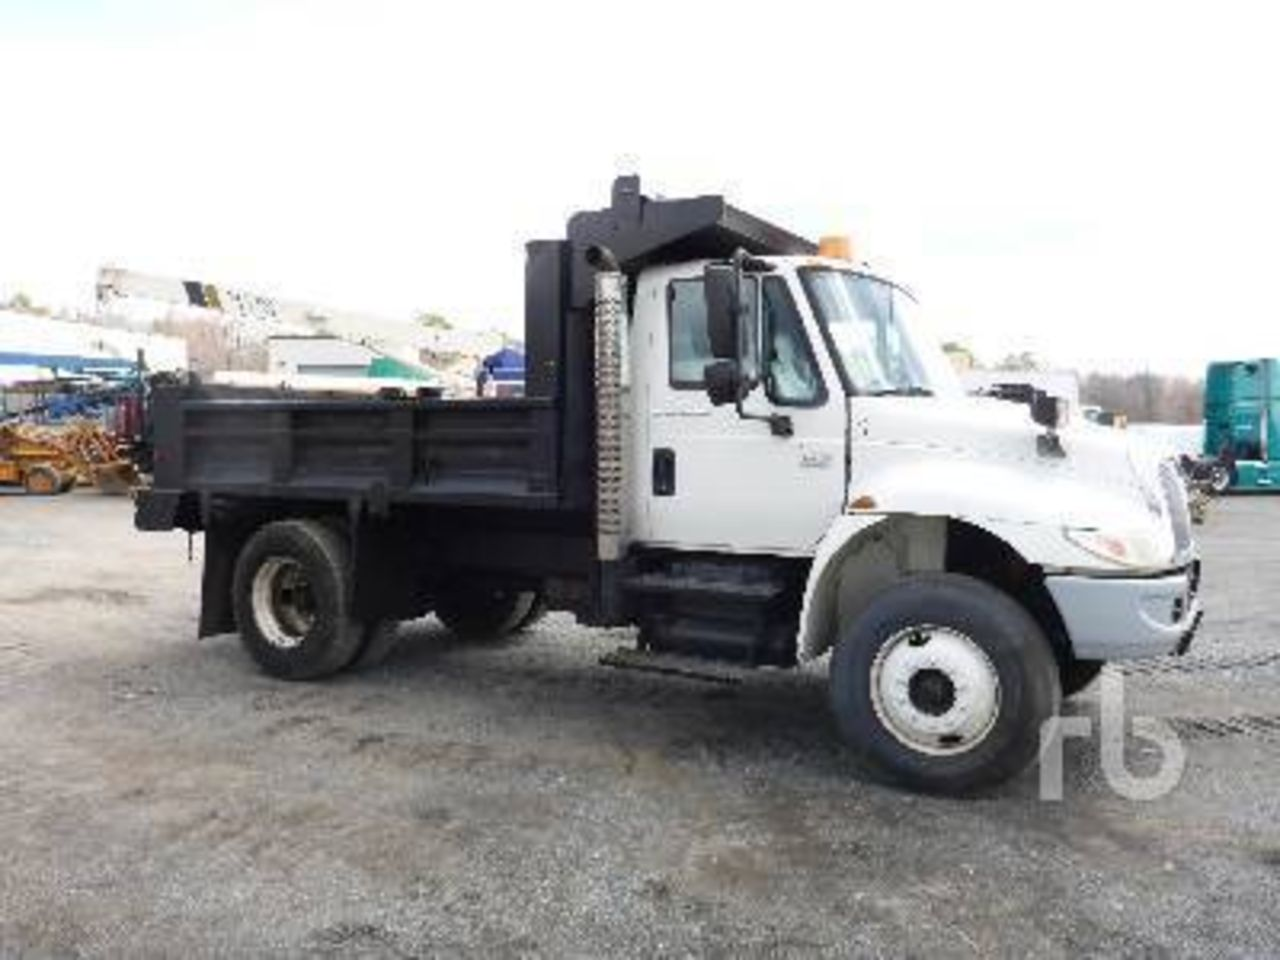 2002 International 4400 Wiring Diagram Diagrams Truck Dump Trucks For Sale Used On Auto 2004